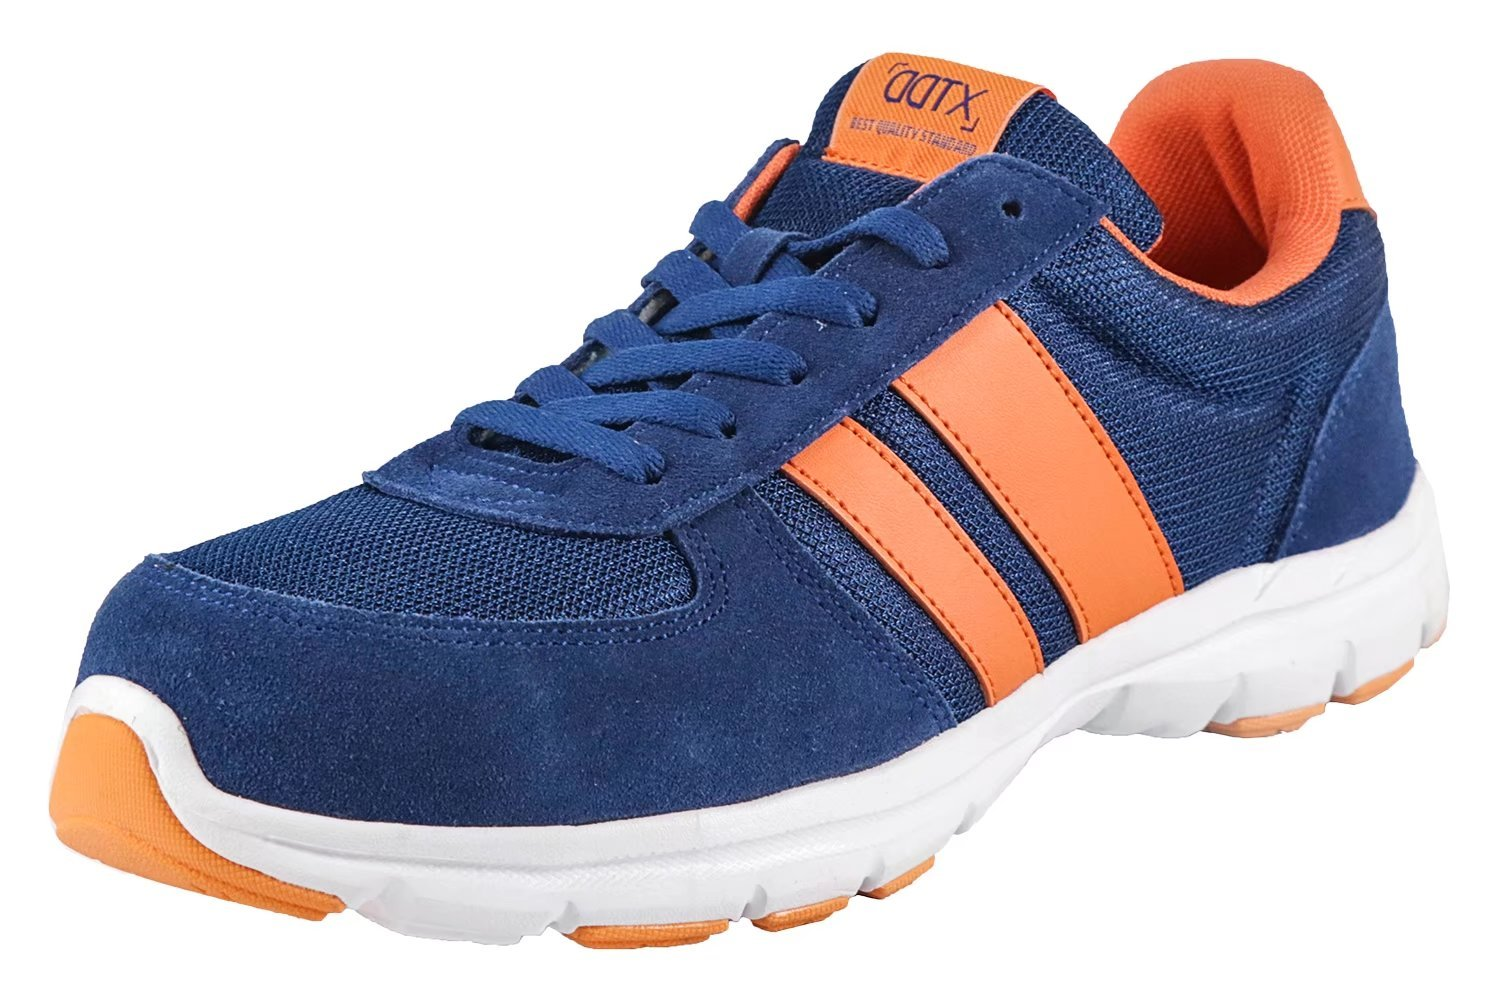 DDTX Spring and Summer Suede Leather Steel Toe Safety Shoes Blue (8)